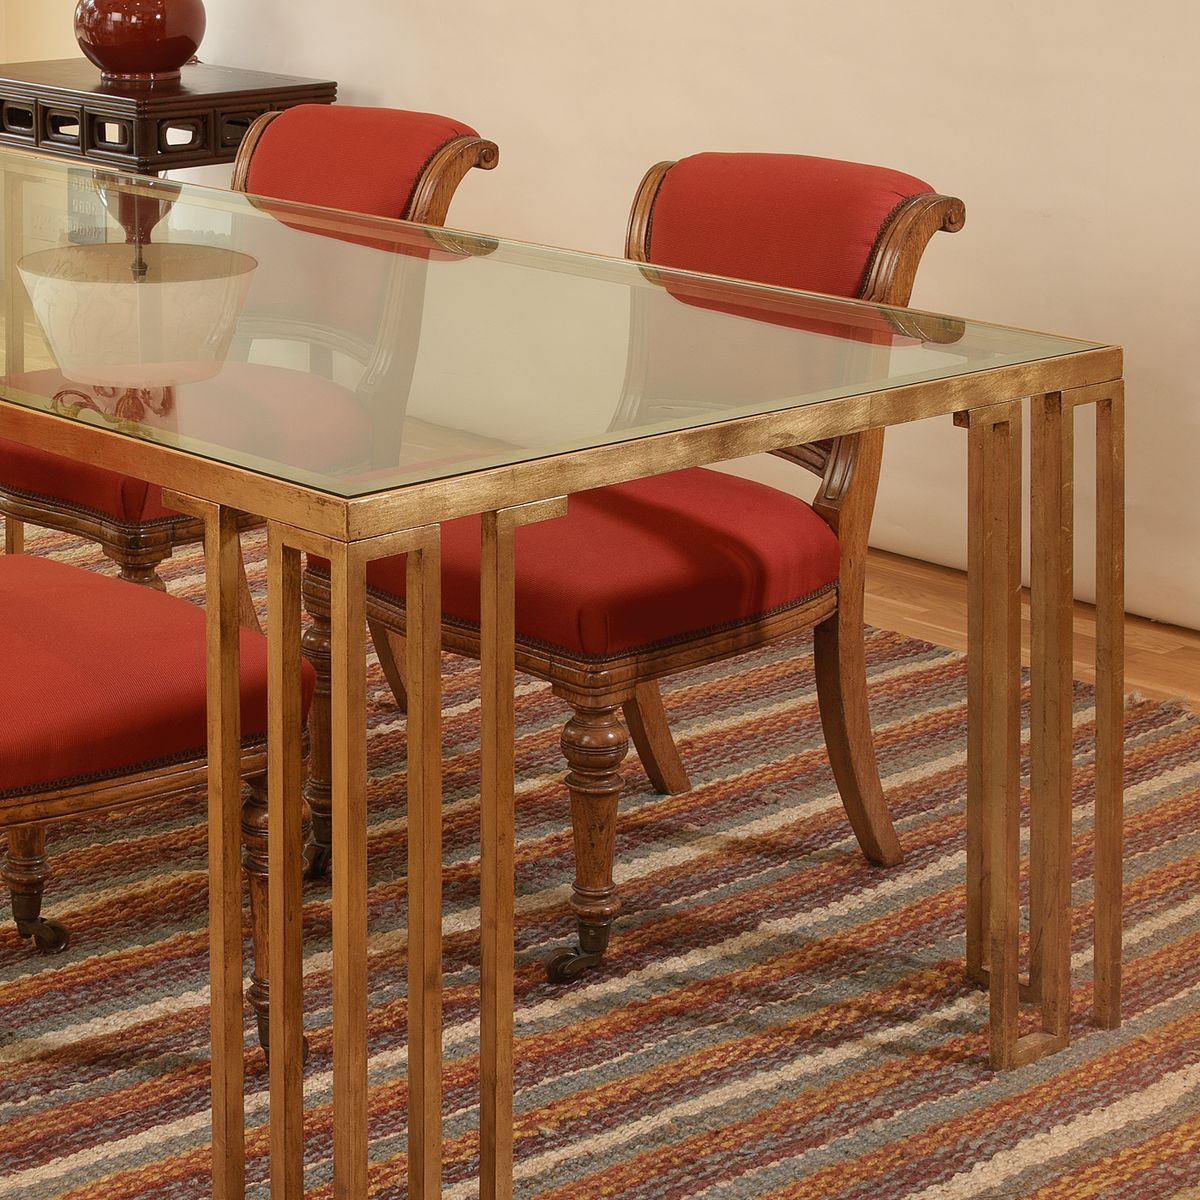 Haydon Greek Key Dining Table - Vaughan Designs | Dining ...